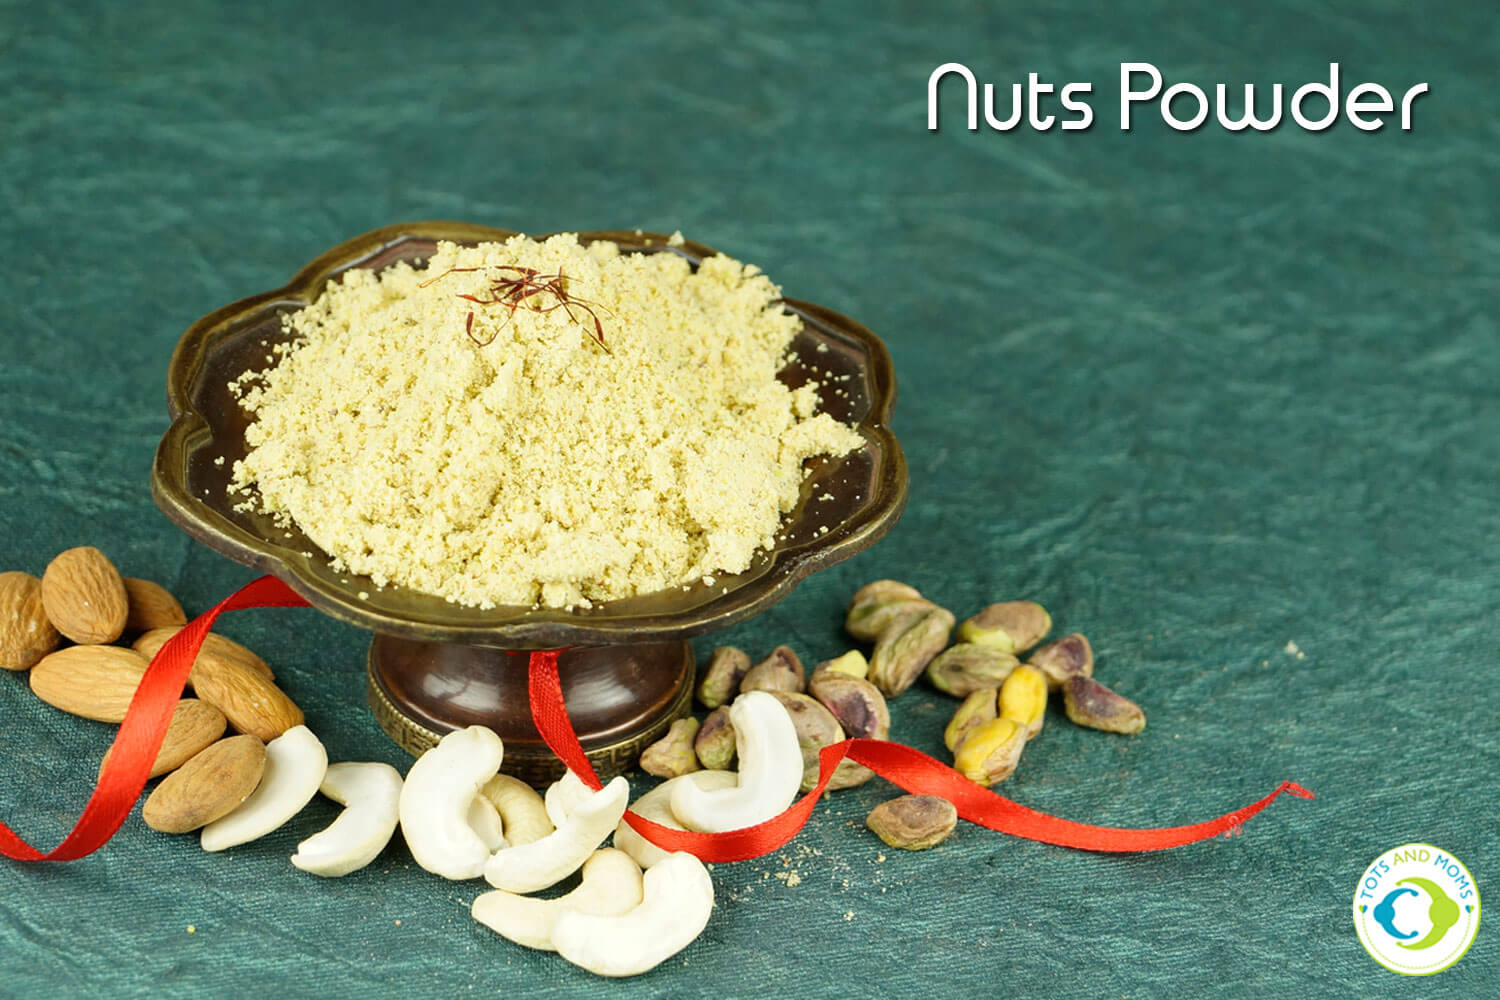 NUTS POWDER for Babies, Toddlers, Kids & Family for desserts, sweets, porridges